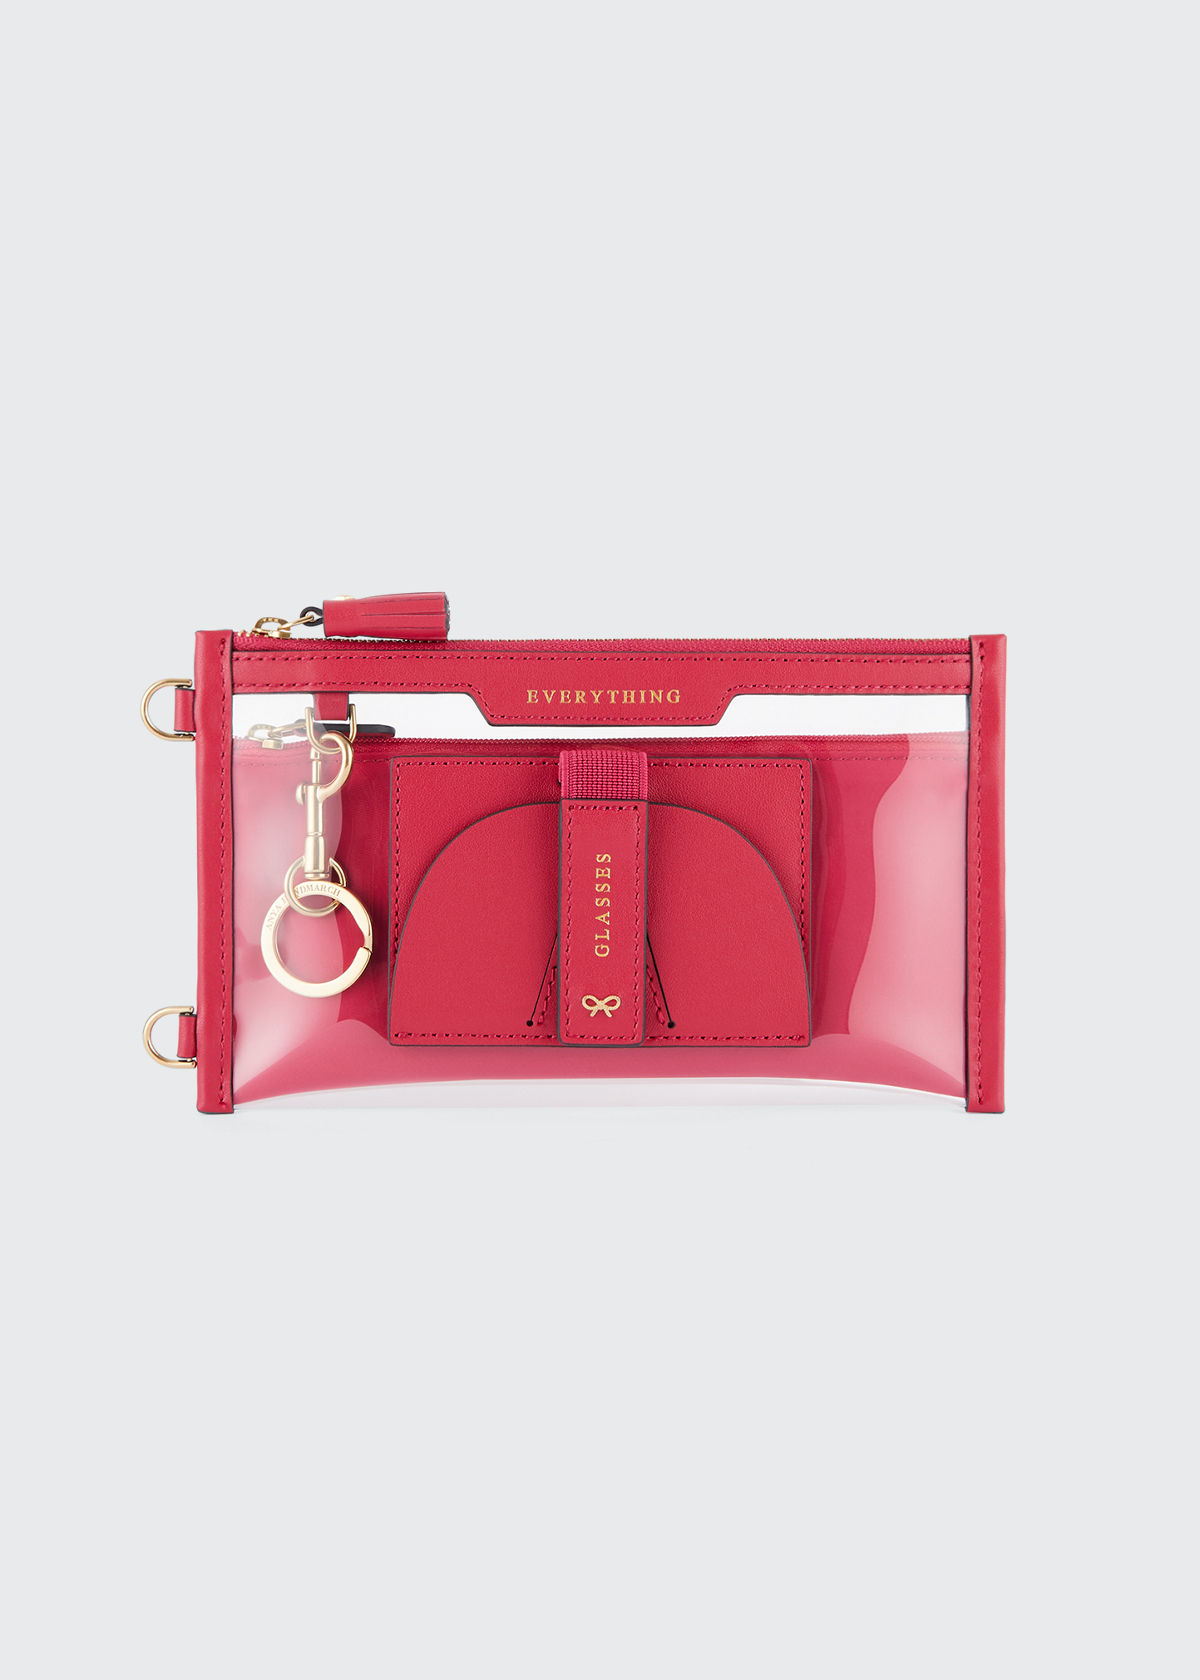 Anya Hindmarch EVERYTHING POUCH CLEAR CROSSBODY BAG, HOT PINK